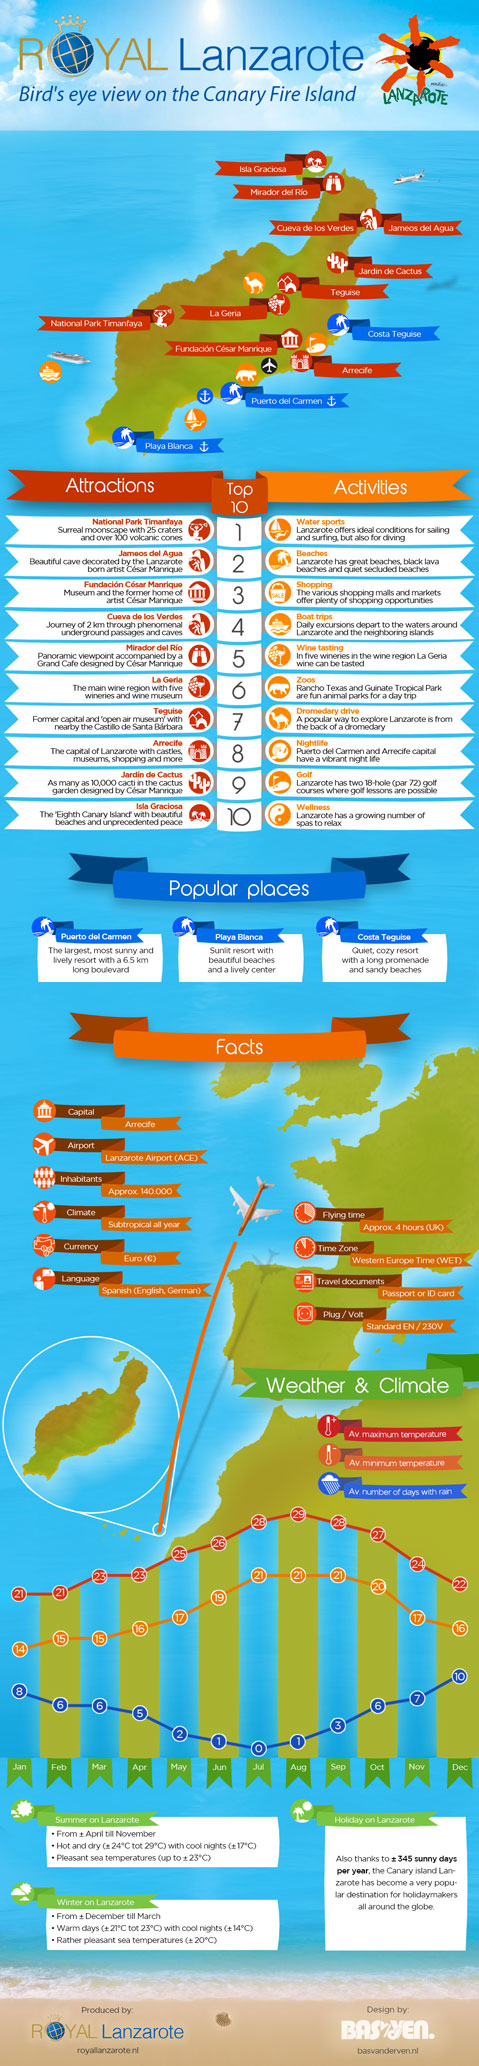 Getting Away To the Isle of Lanzarote Infographic